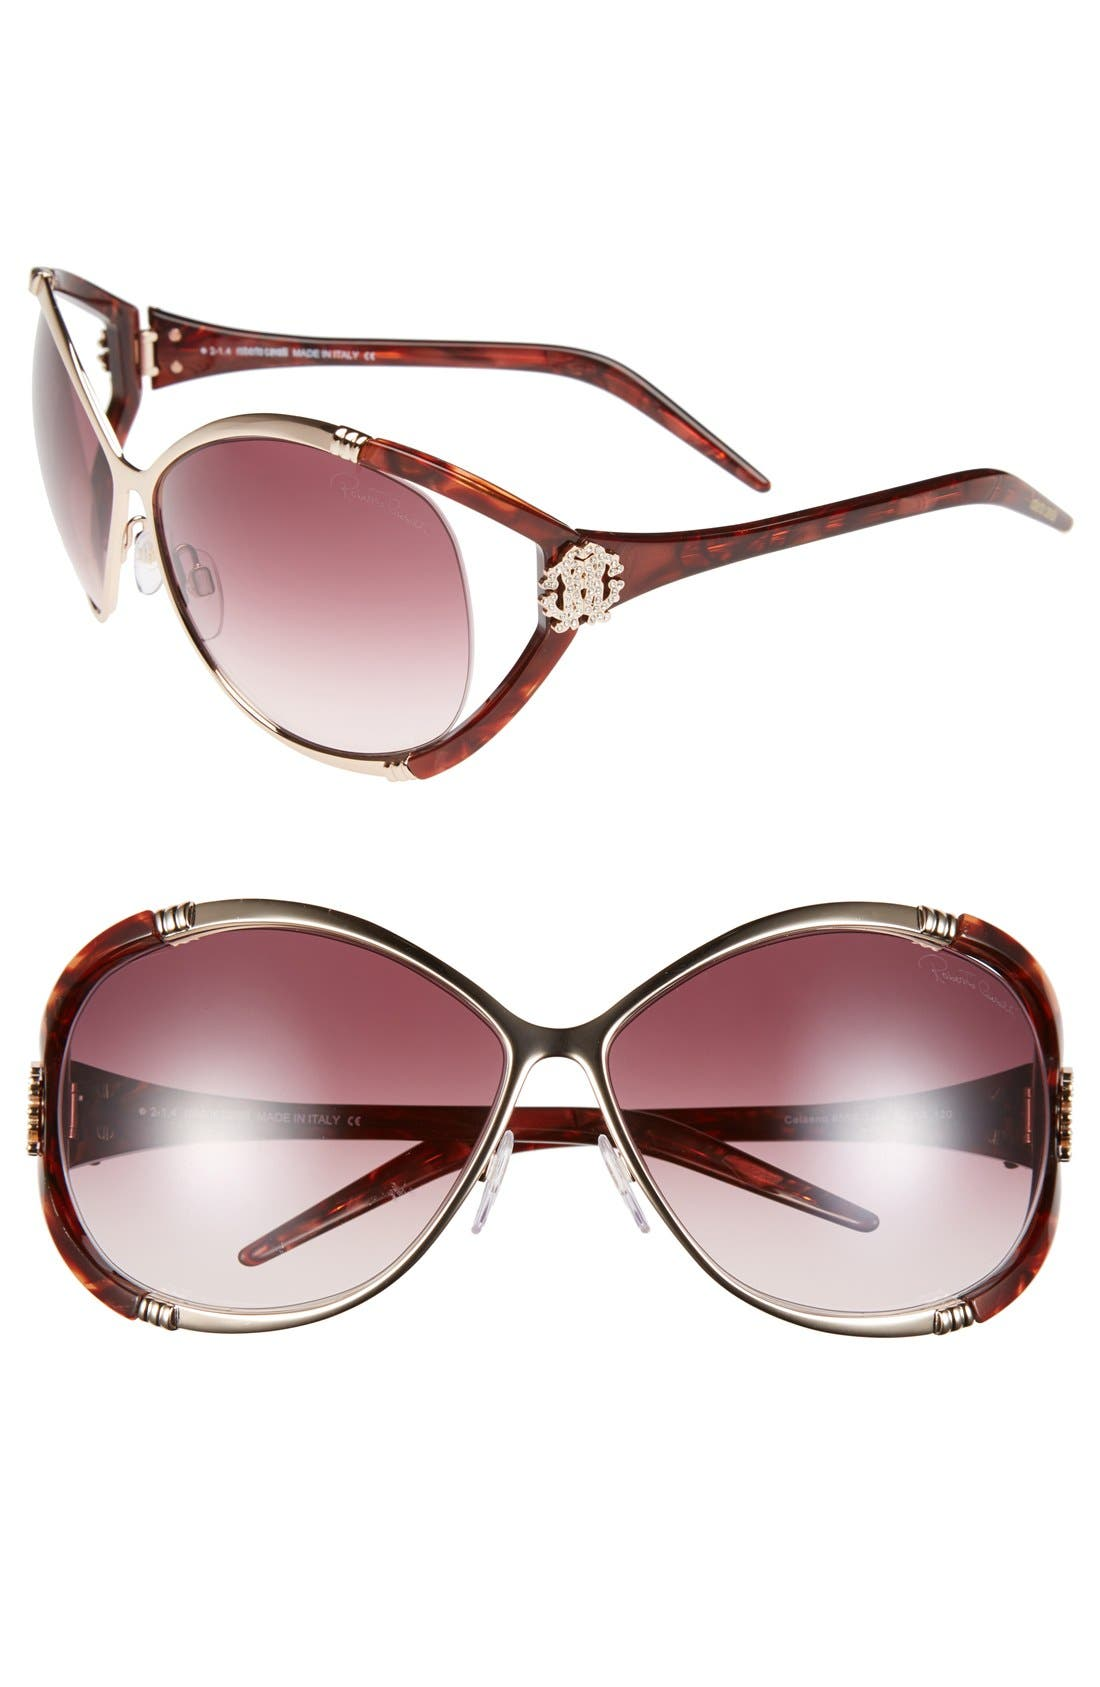 Alternate Image 1 Selected - Roberto Cavalli 'Celaeno - Glam Couture' 66mm Sunglasses